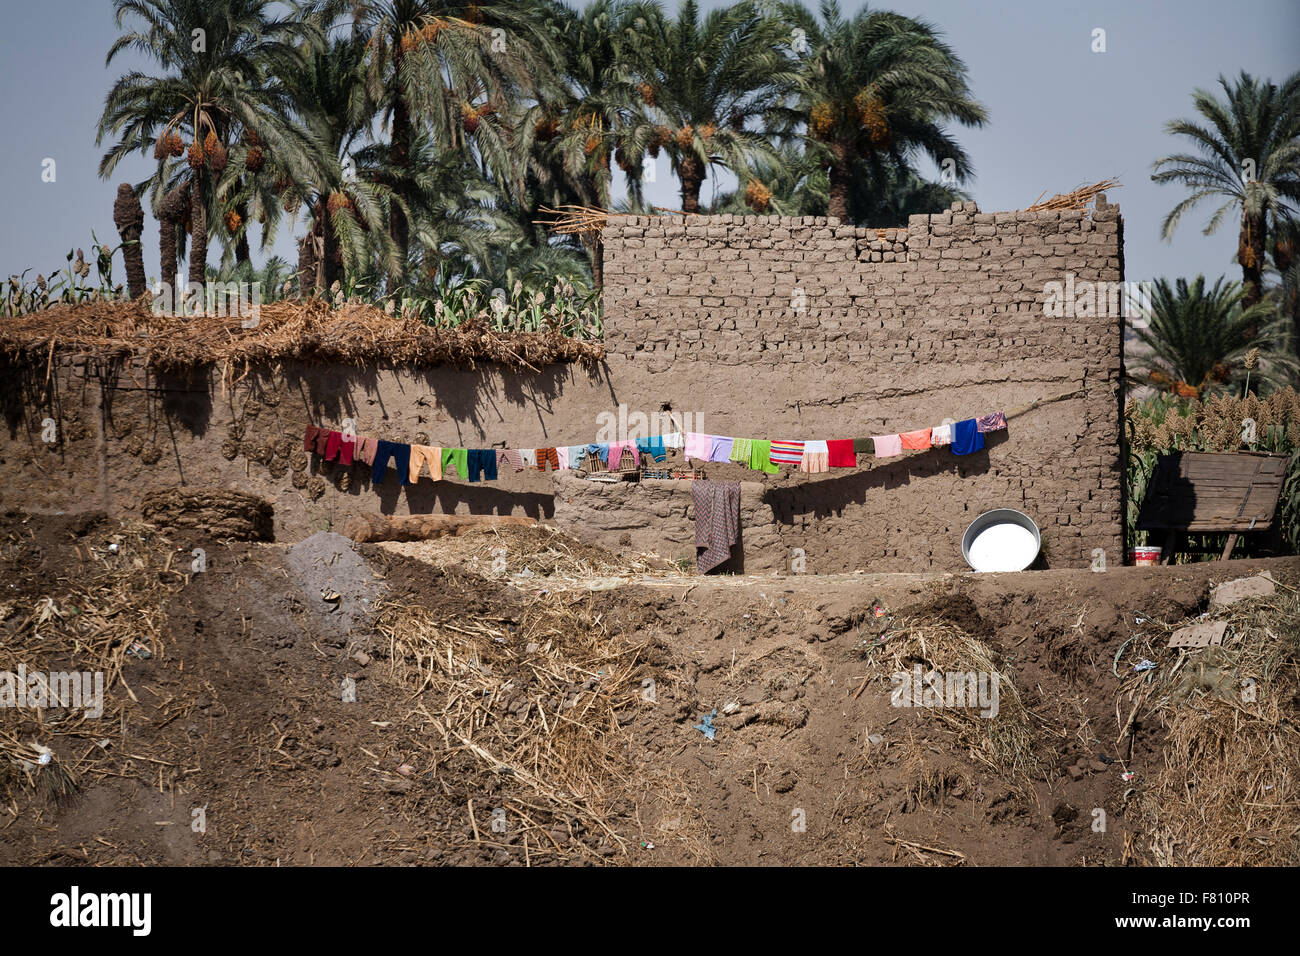 Scenes along The banks of the River Nile in Middle Egypt.Unchanged for hundreds of years. - Stock Image